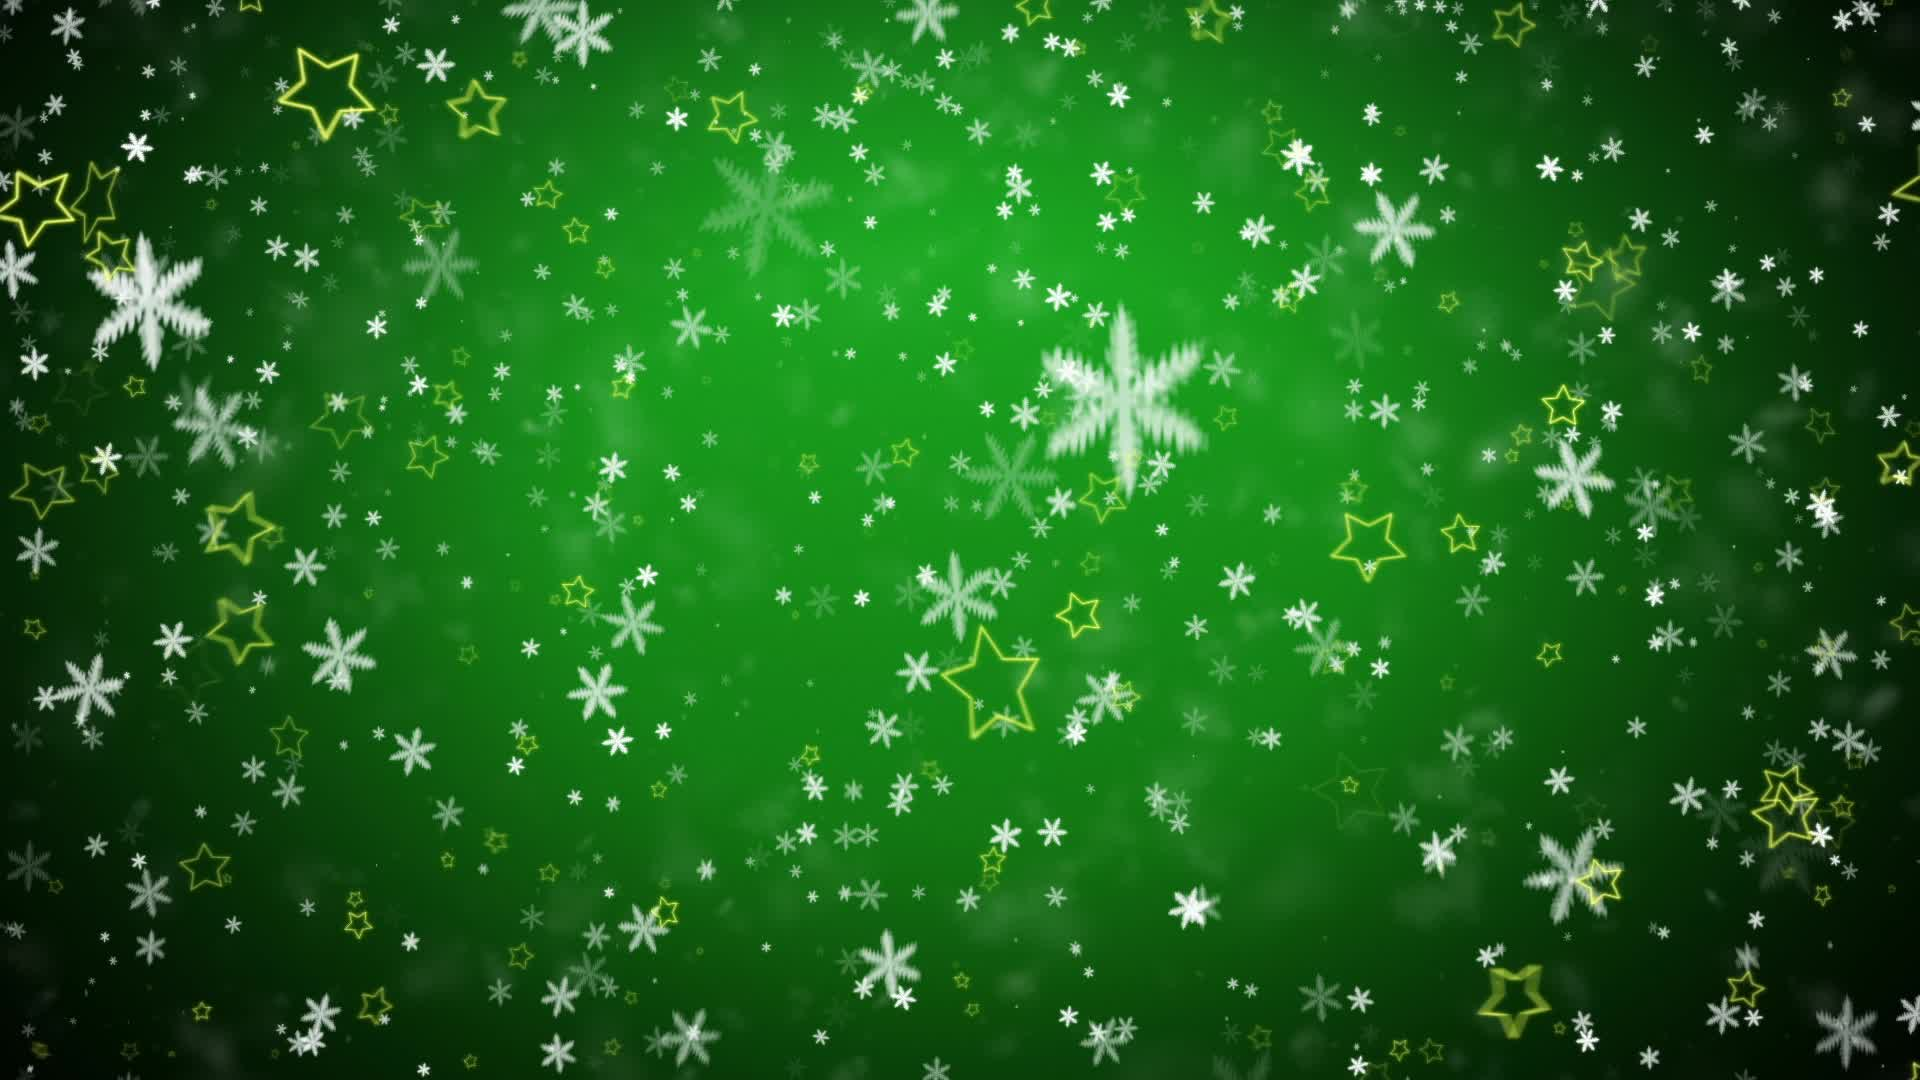 Falling snowflakes and stars on a green background ...